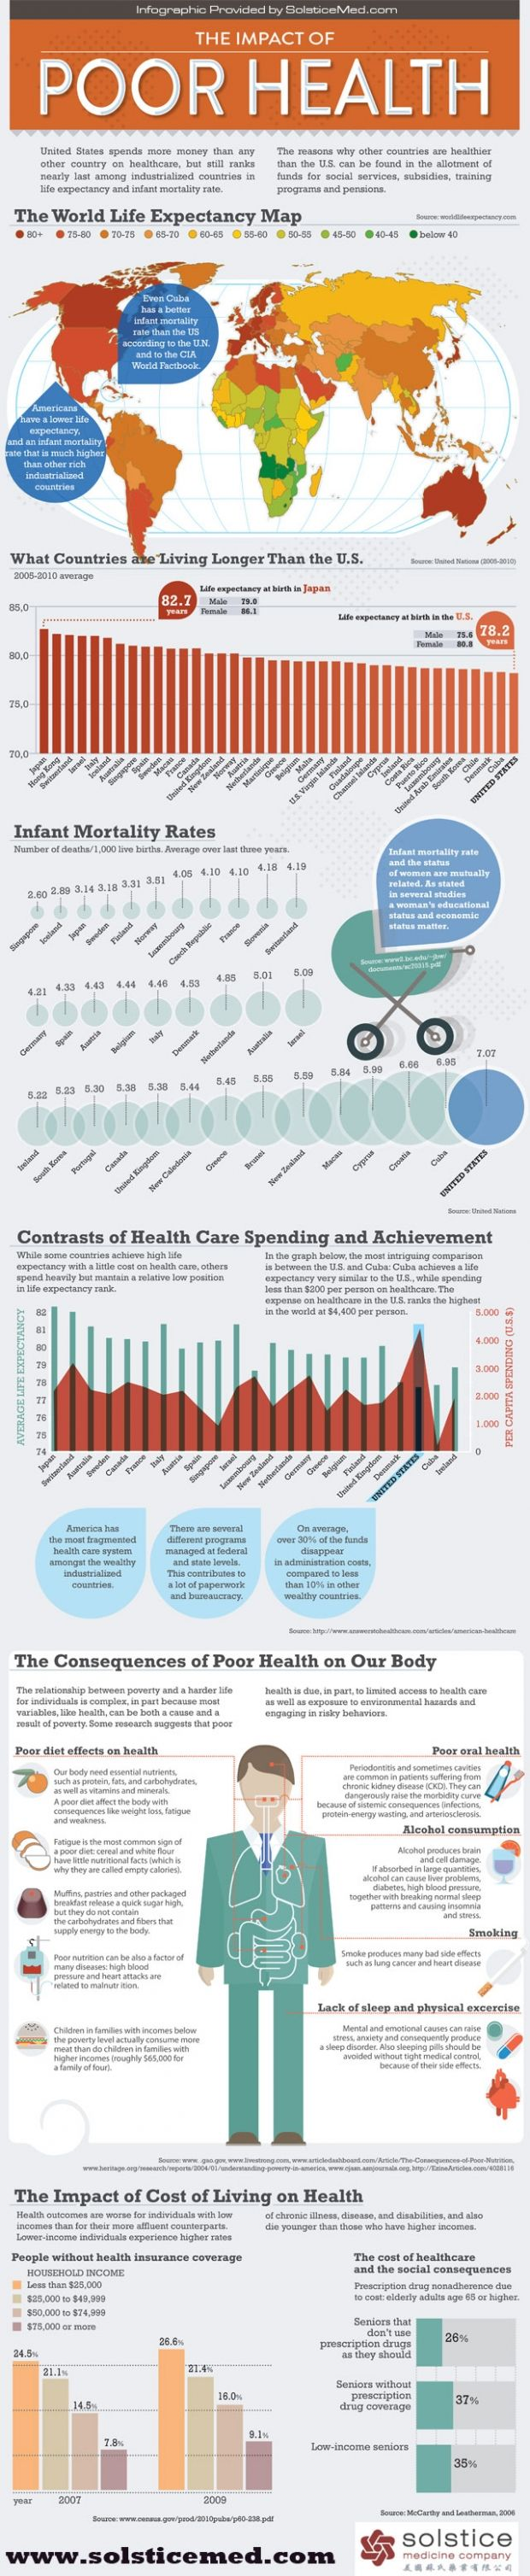 Interesting look at health across many countries (focused on the US, but still has interesting correlations) - www.healthcoverageally.com